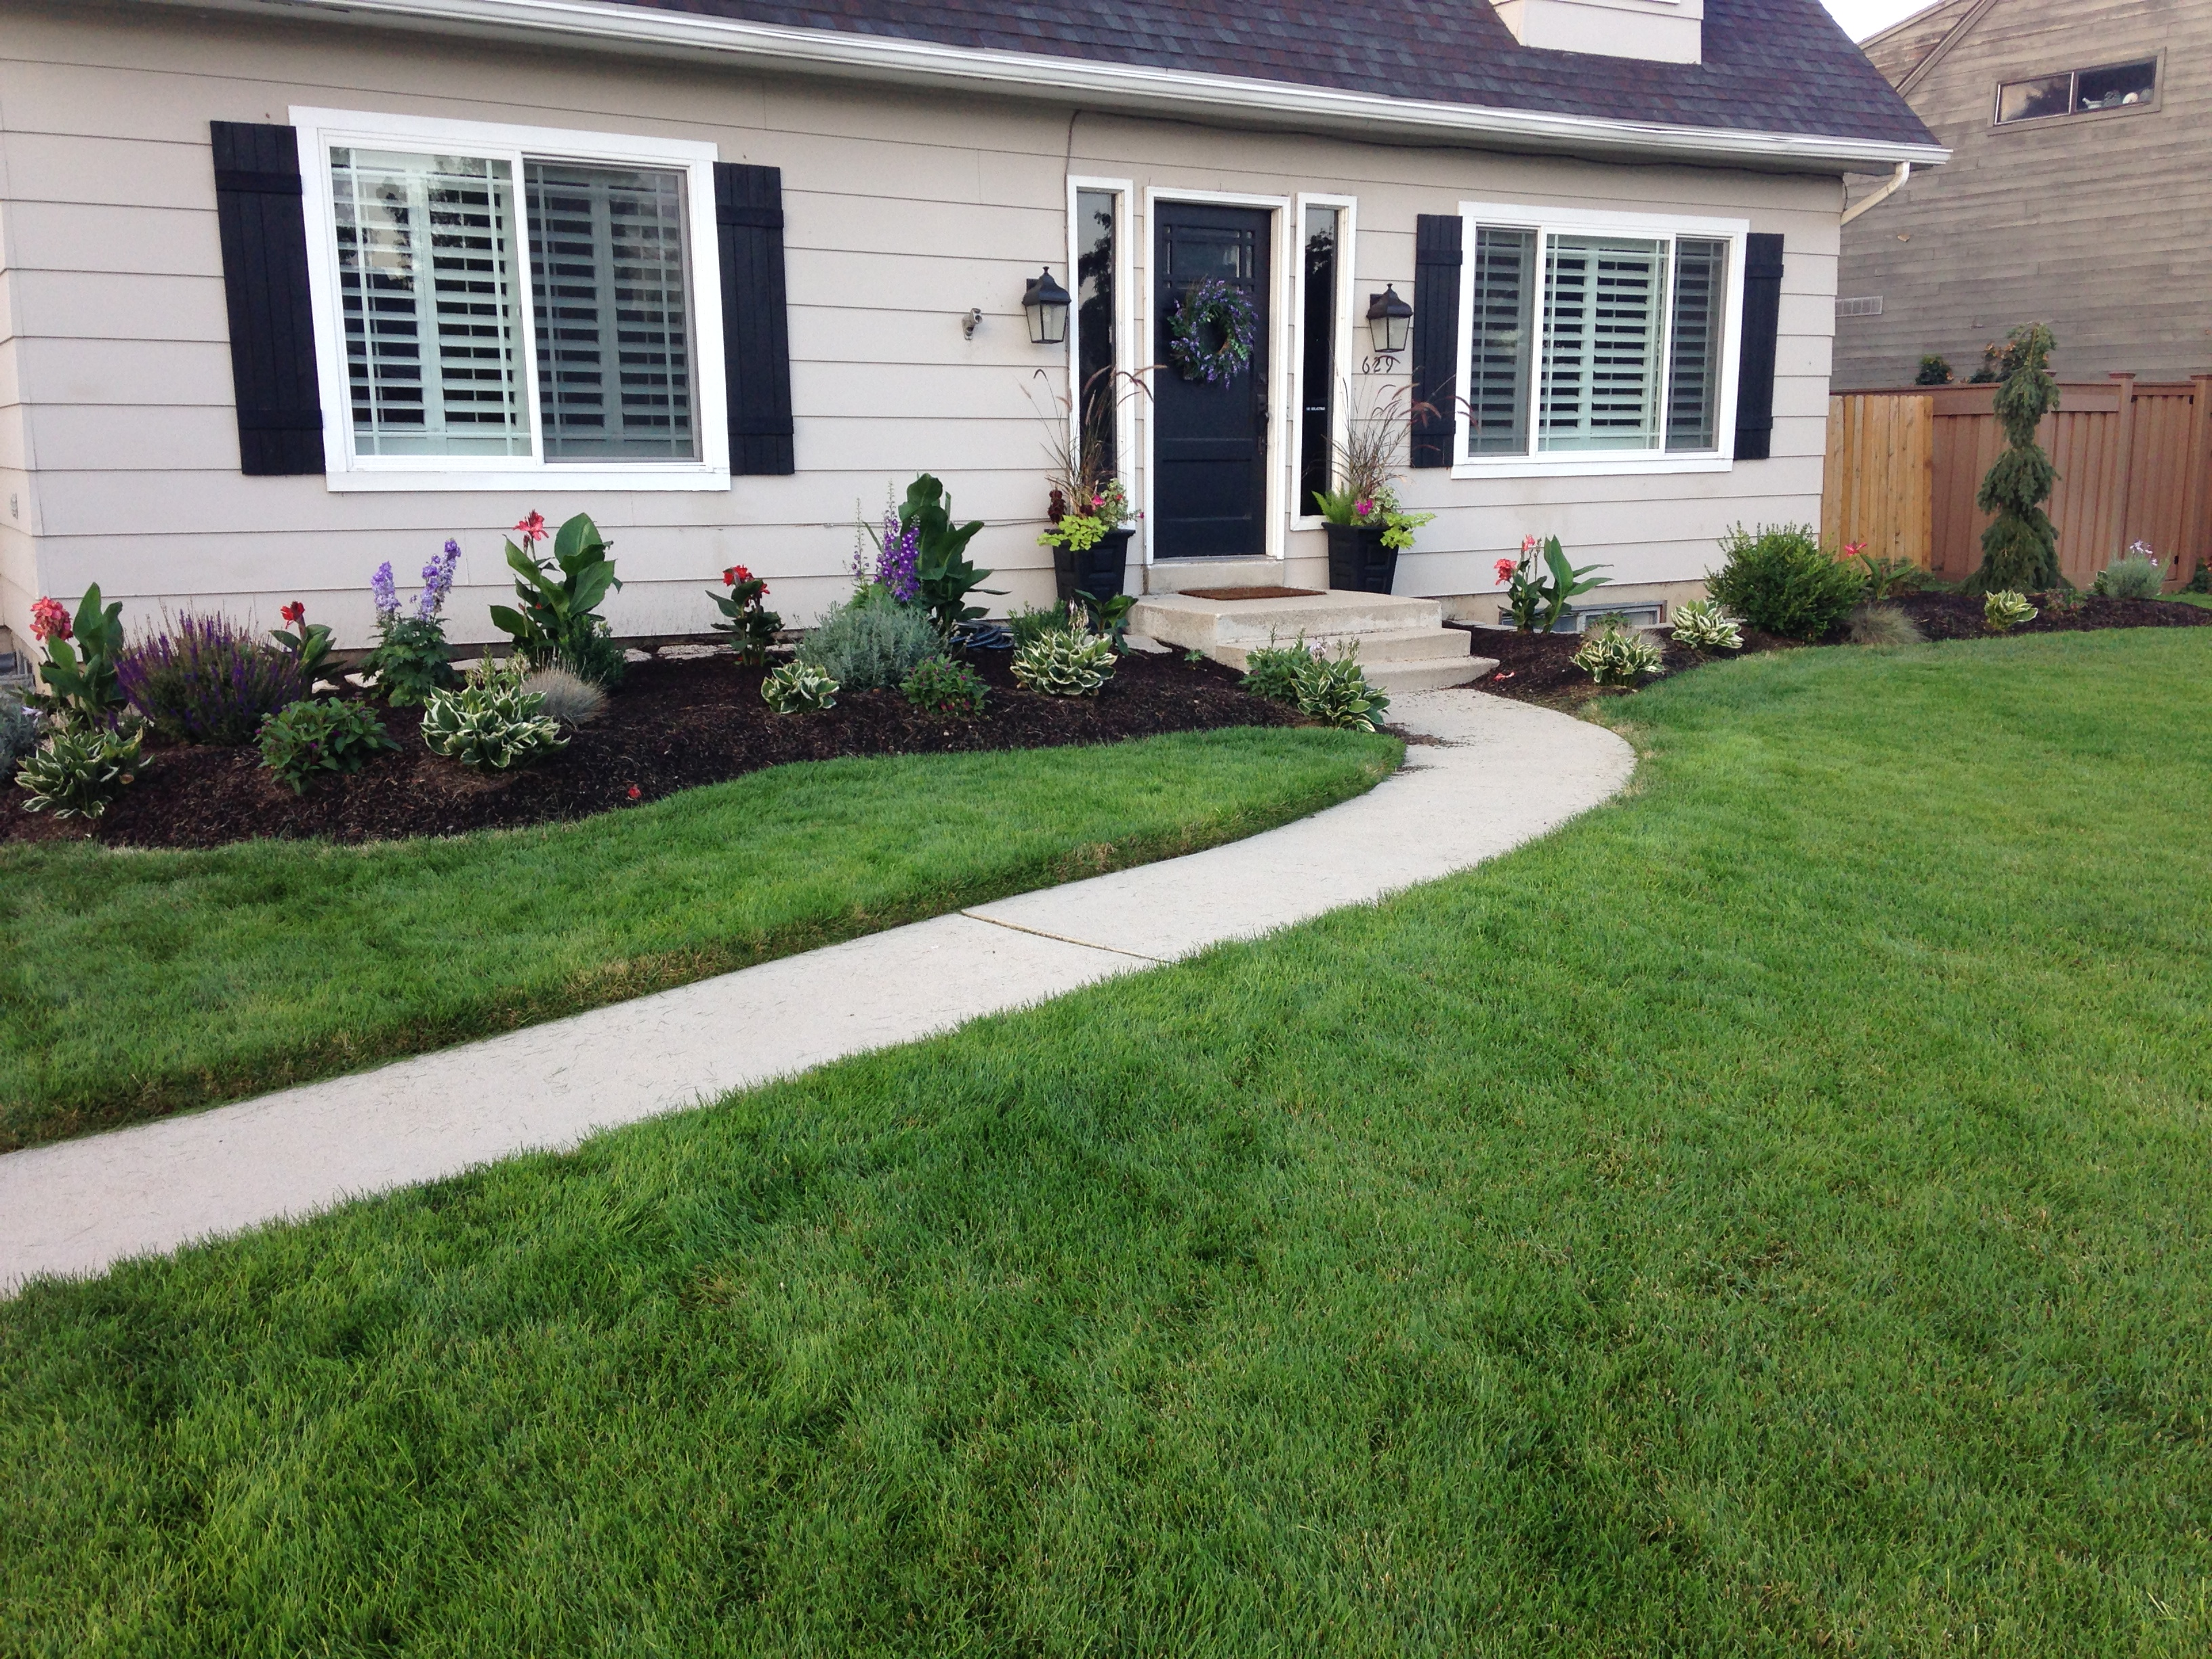 If You Really Want To Know How Care For A Lawn Need Focus In And Learn Something About The Individual Gr Plants That Comprise It